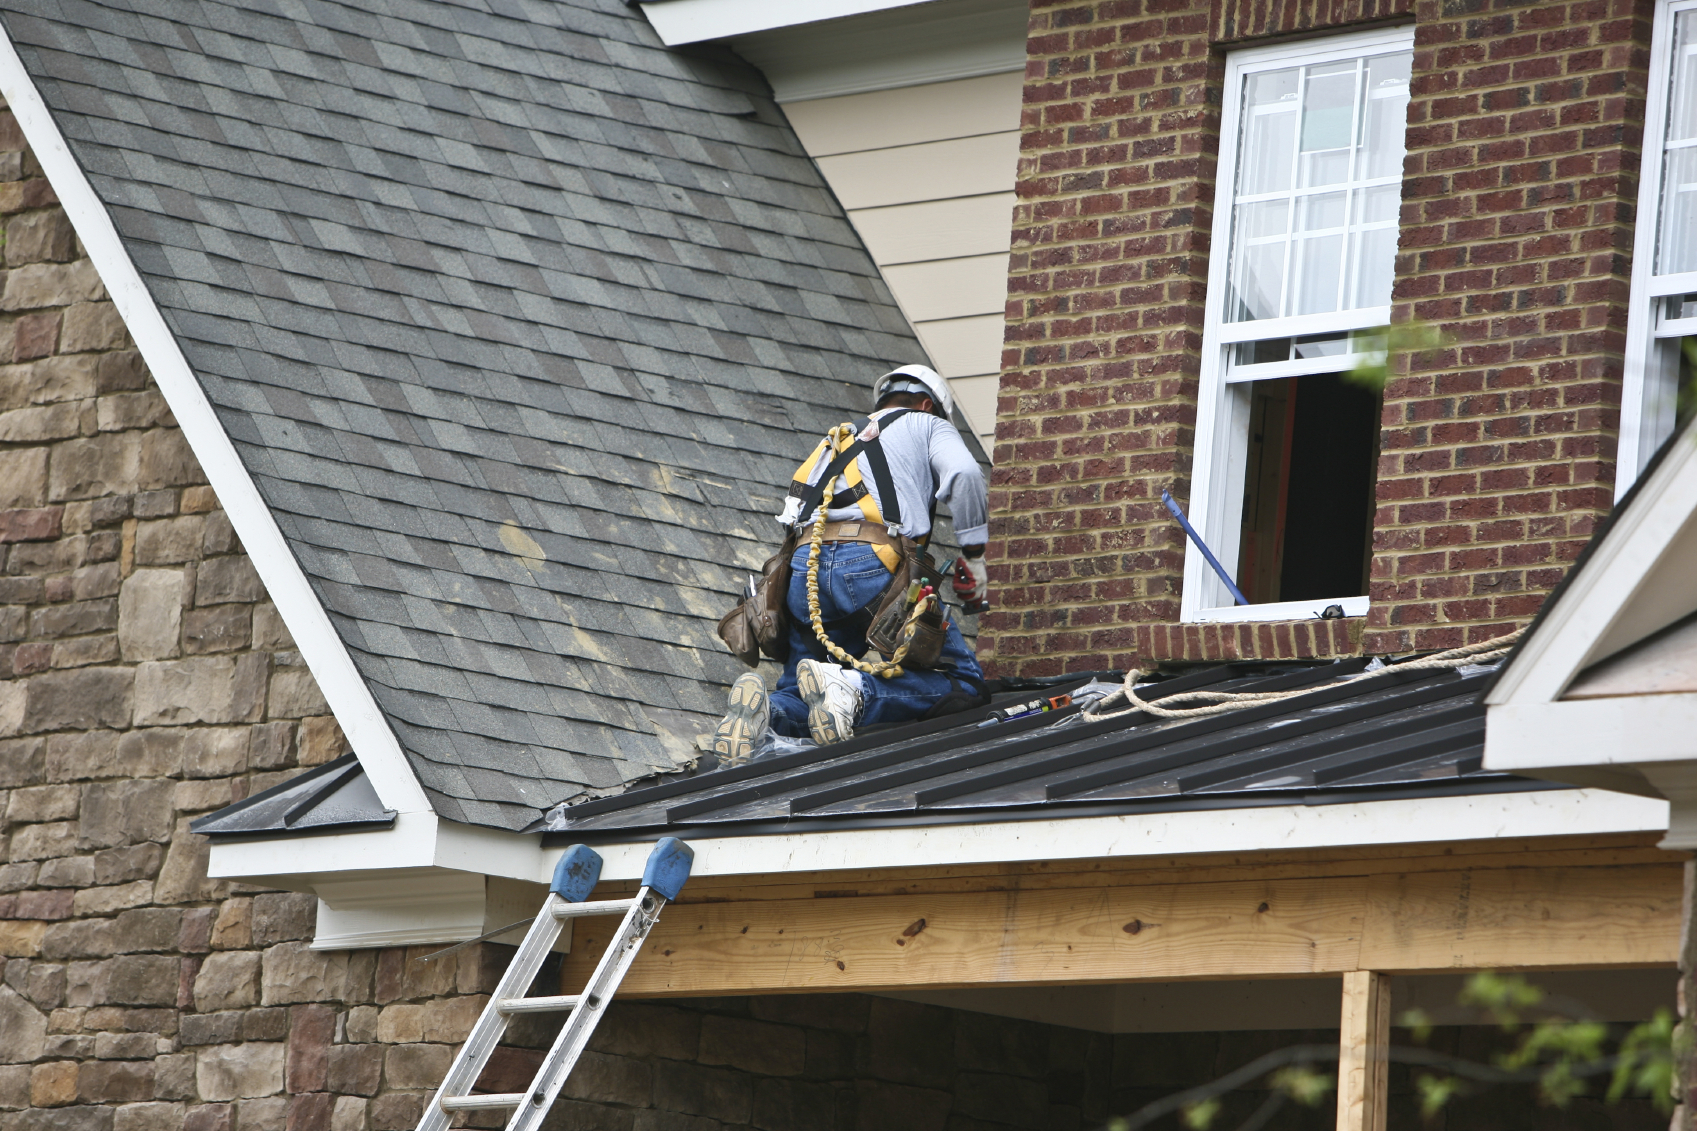 Lessons Learned About Roofing